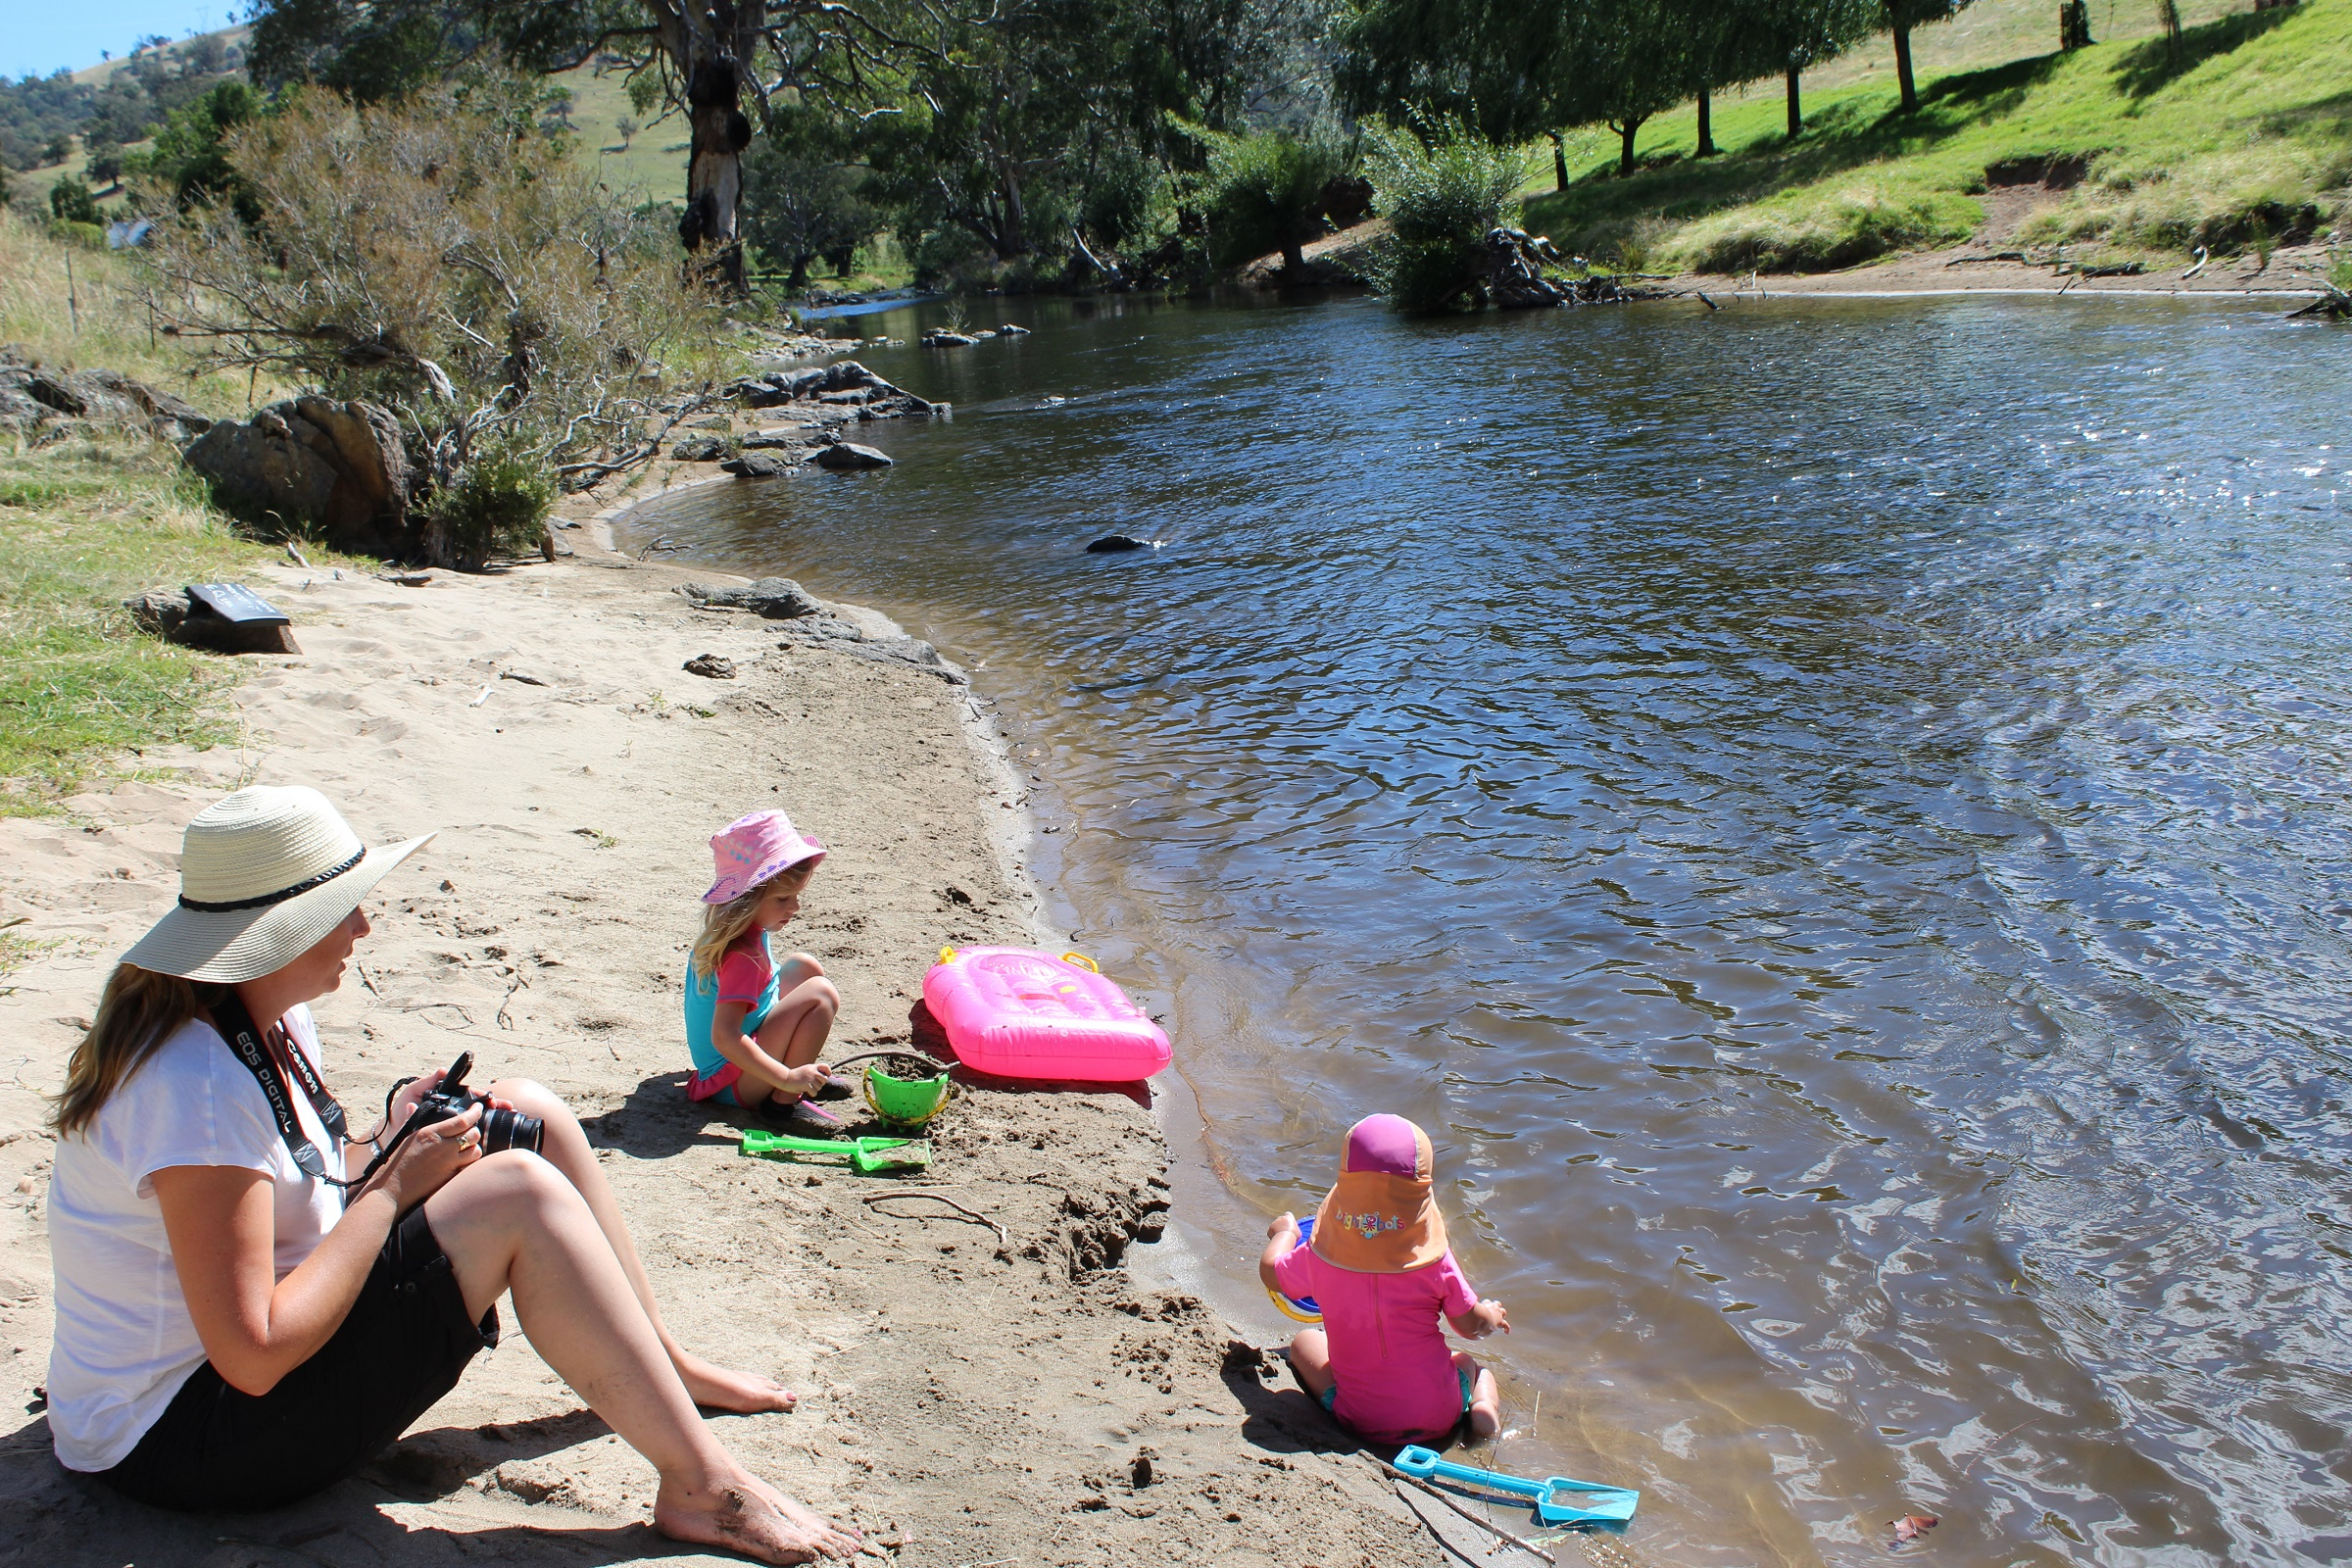 Family fun at one of our sandy river beaches gallery image